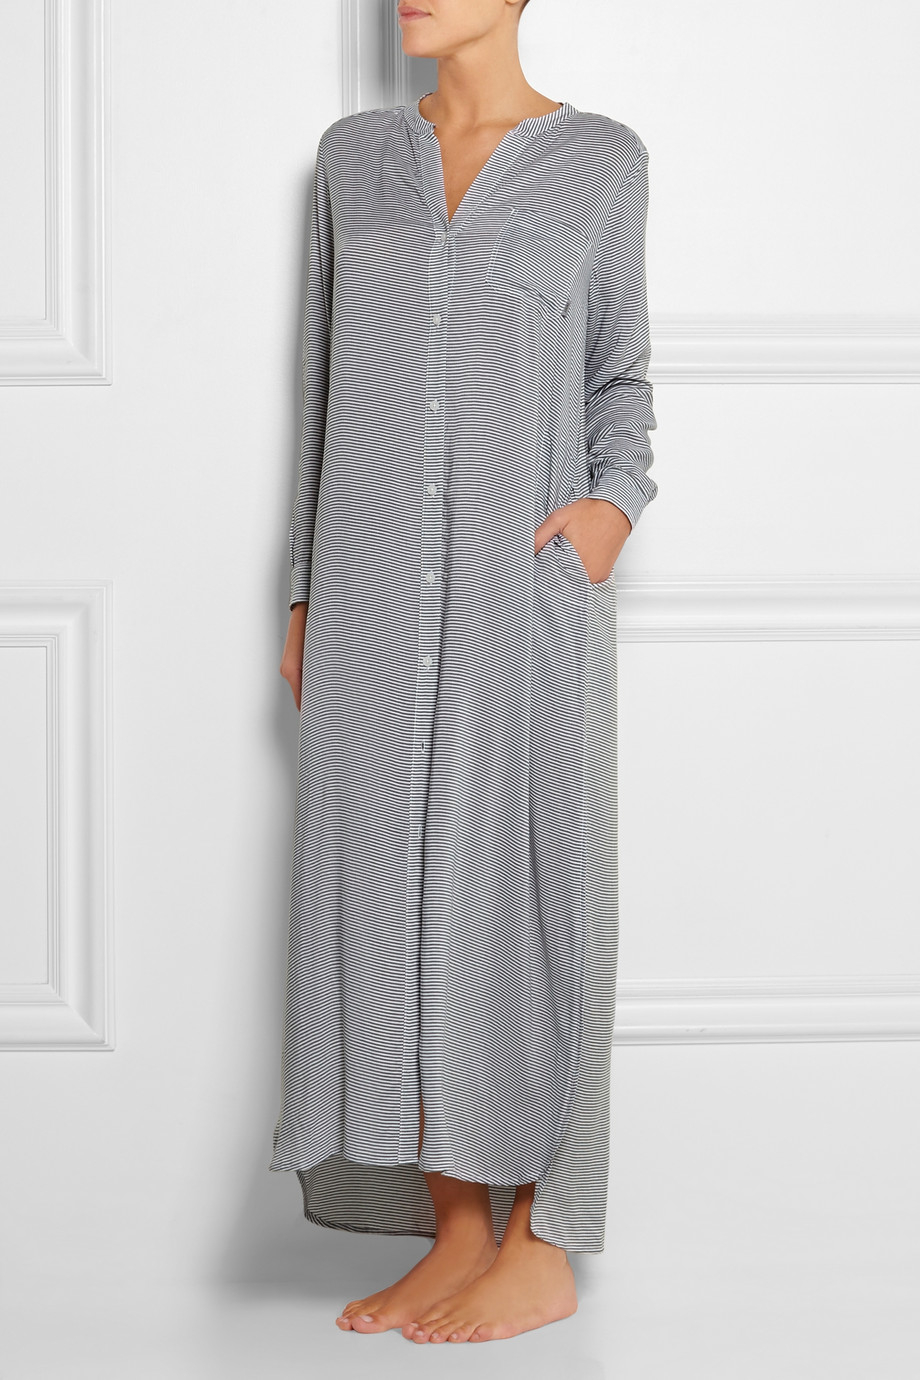 Dkny Rooftop Gardener Striped Voile